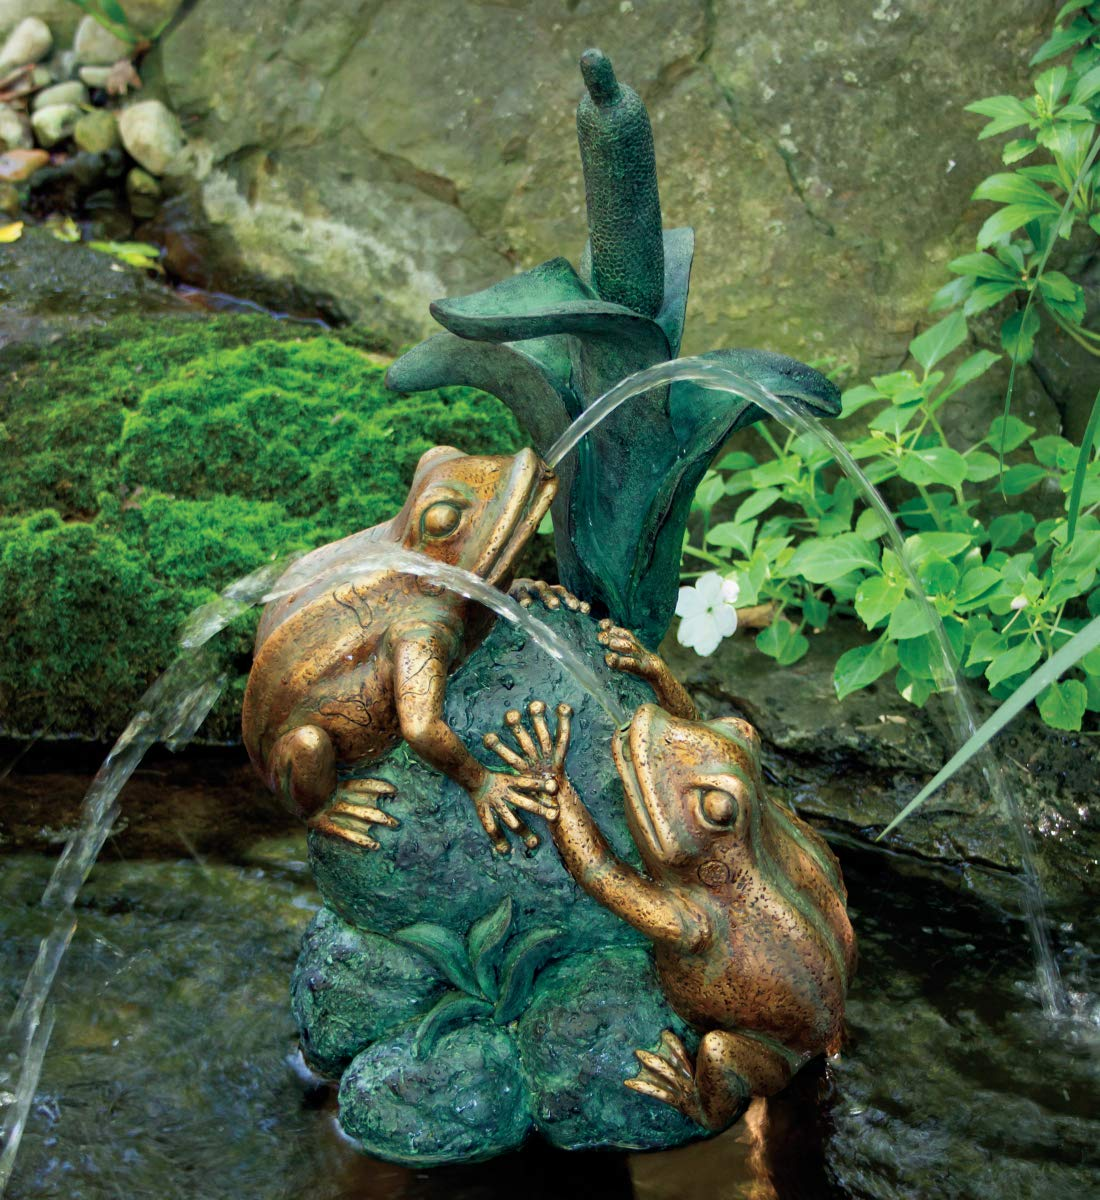 Aquascape Double Frog with Cattail Spitter Fountain for Ponds and Water Gardens | 78304 by Aquascape